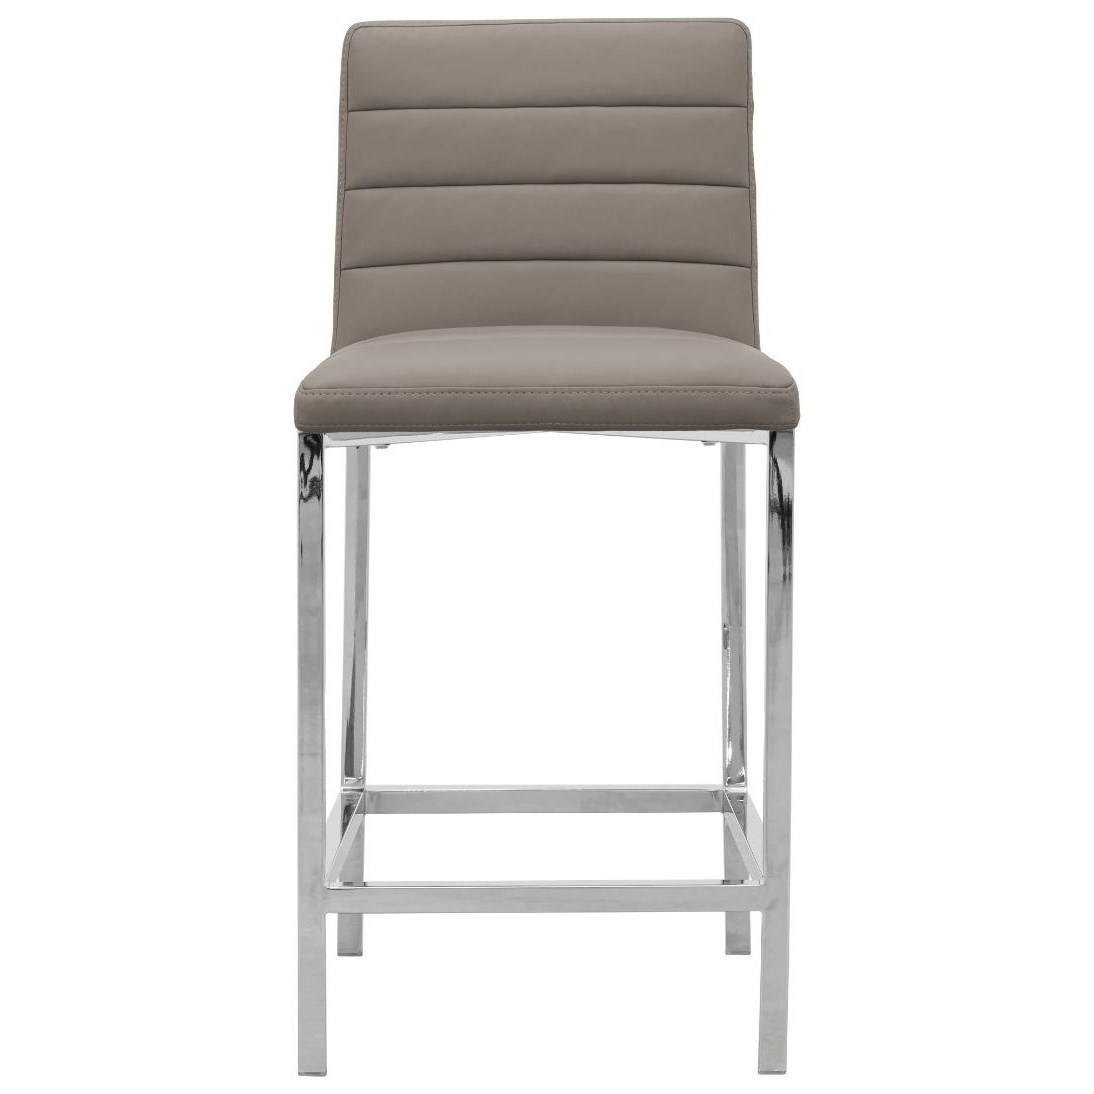 Metal Back Counter Stool in Taupe